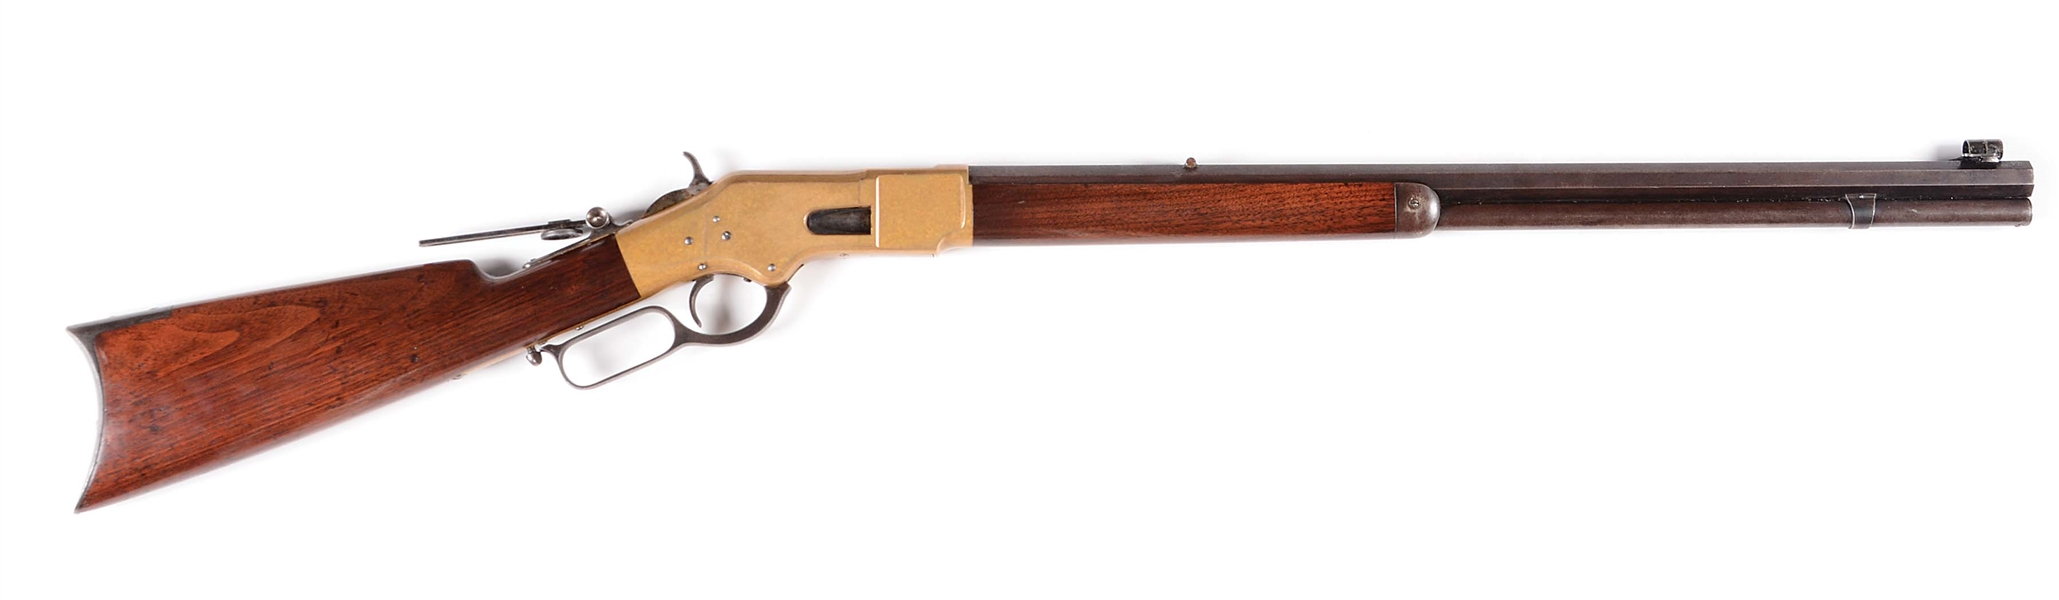 (A) CLASSIC WINCHESTER MODEL 1866 LEVER ACTION RIFLE